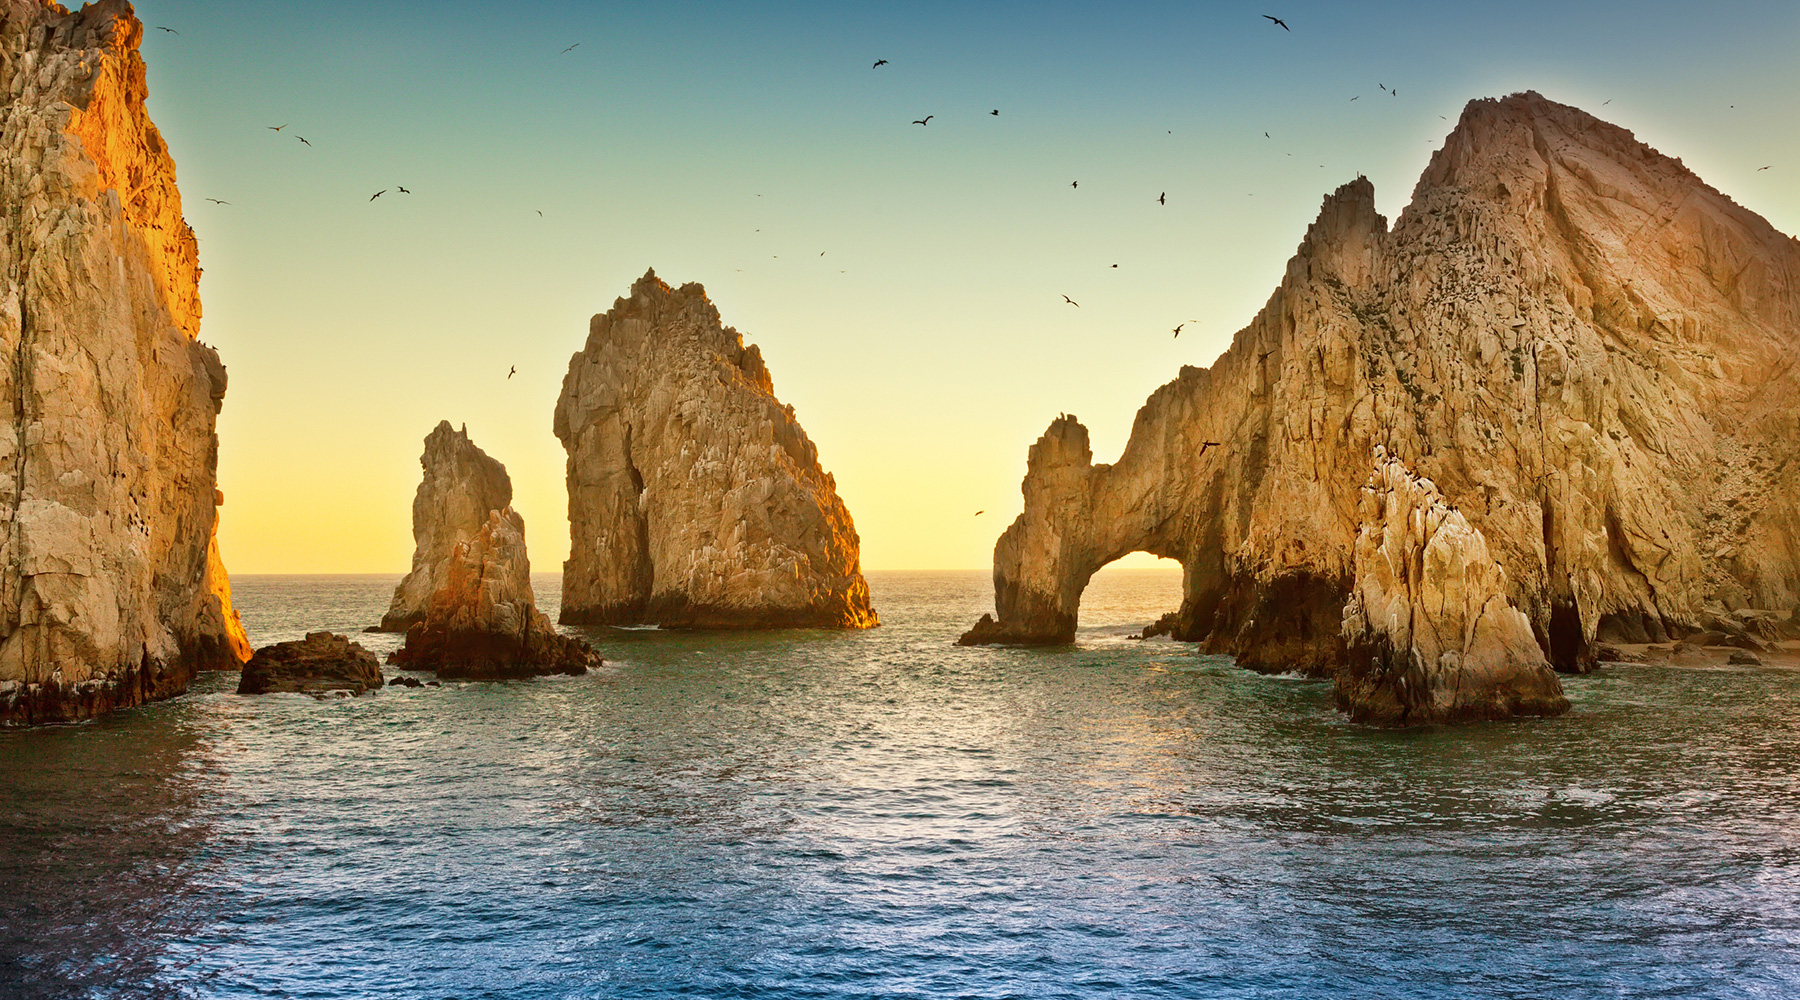 The El Arco rock formation in Cabo San Lucas at sunset.